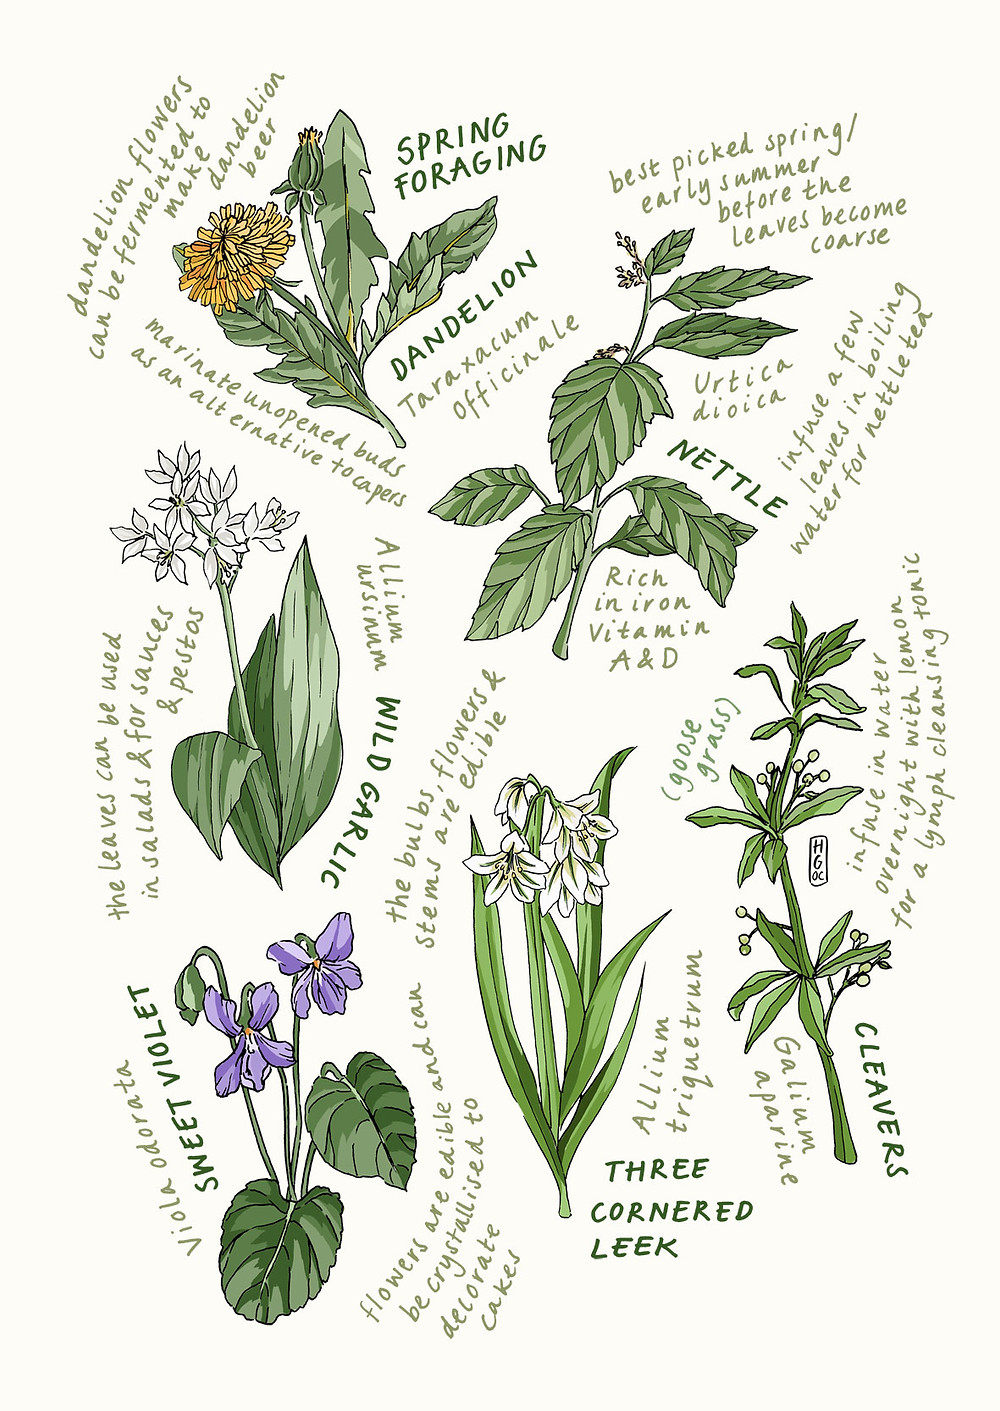 Seasonal Eating in Spring; Dandelion, Nettle, Wild Garlic, Sweet Violet, Three Cornered Leek, Cleavers